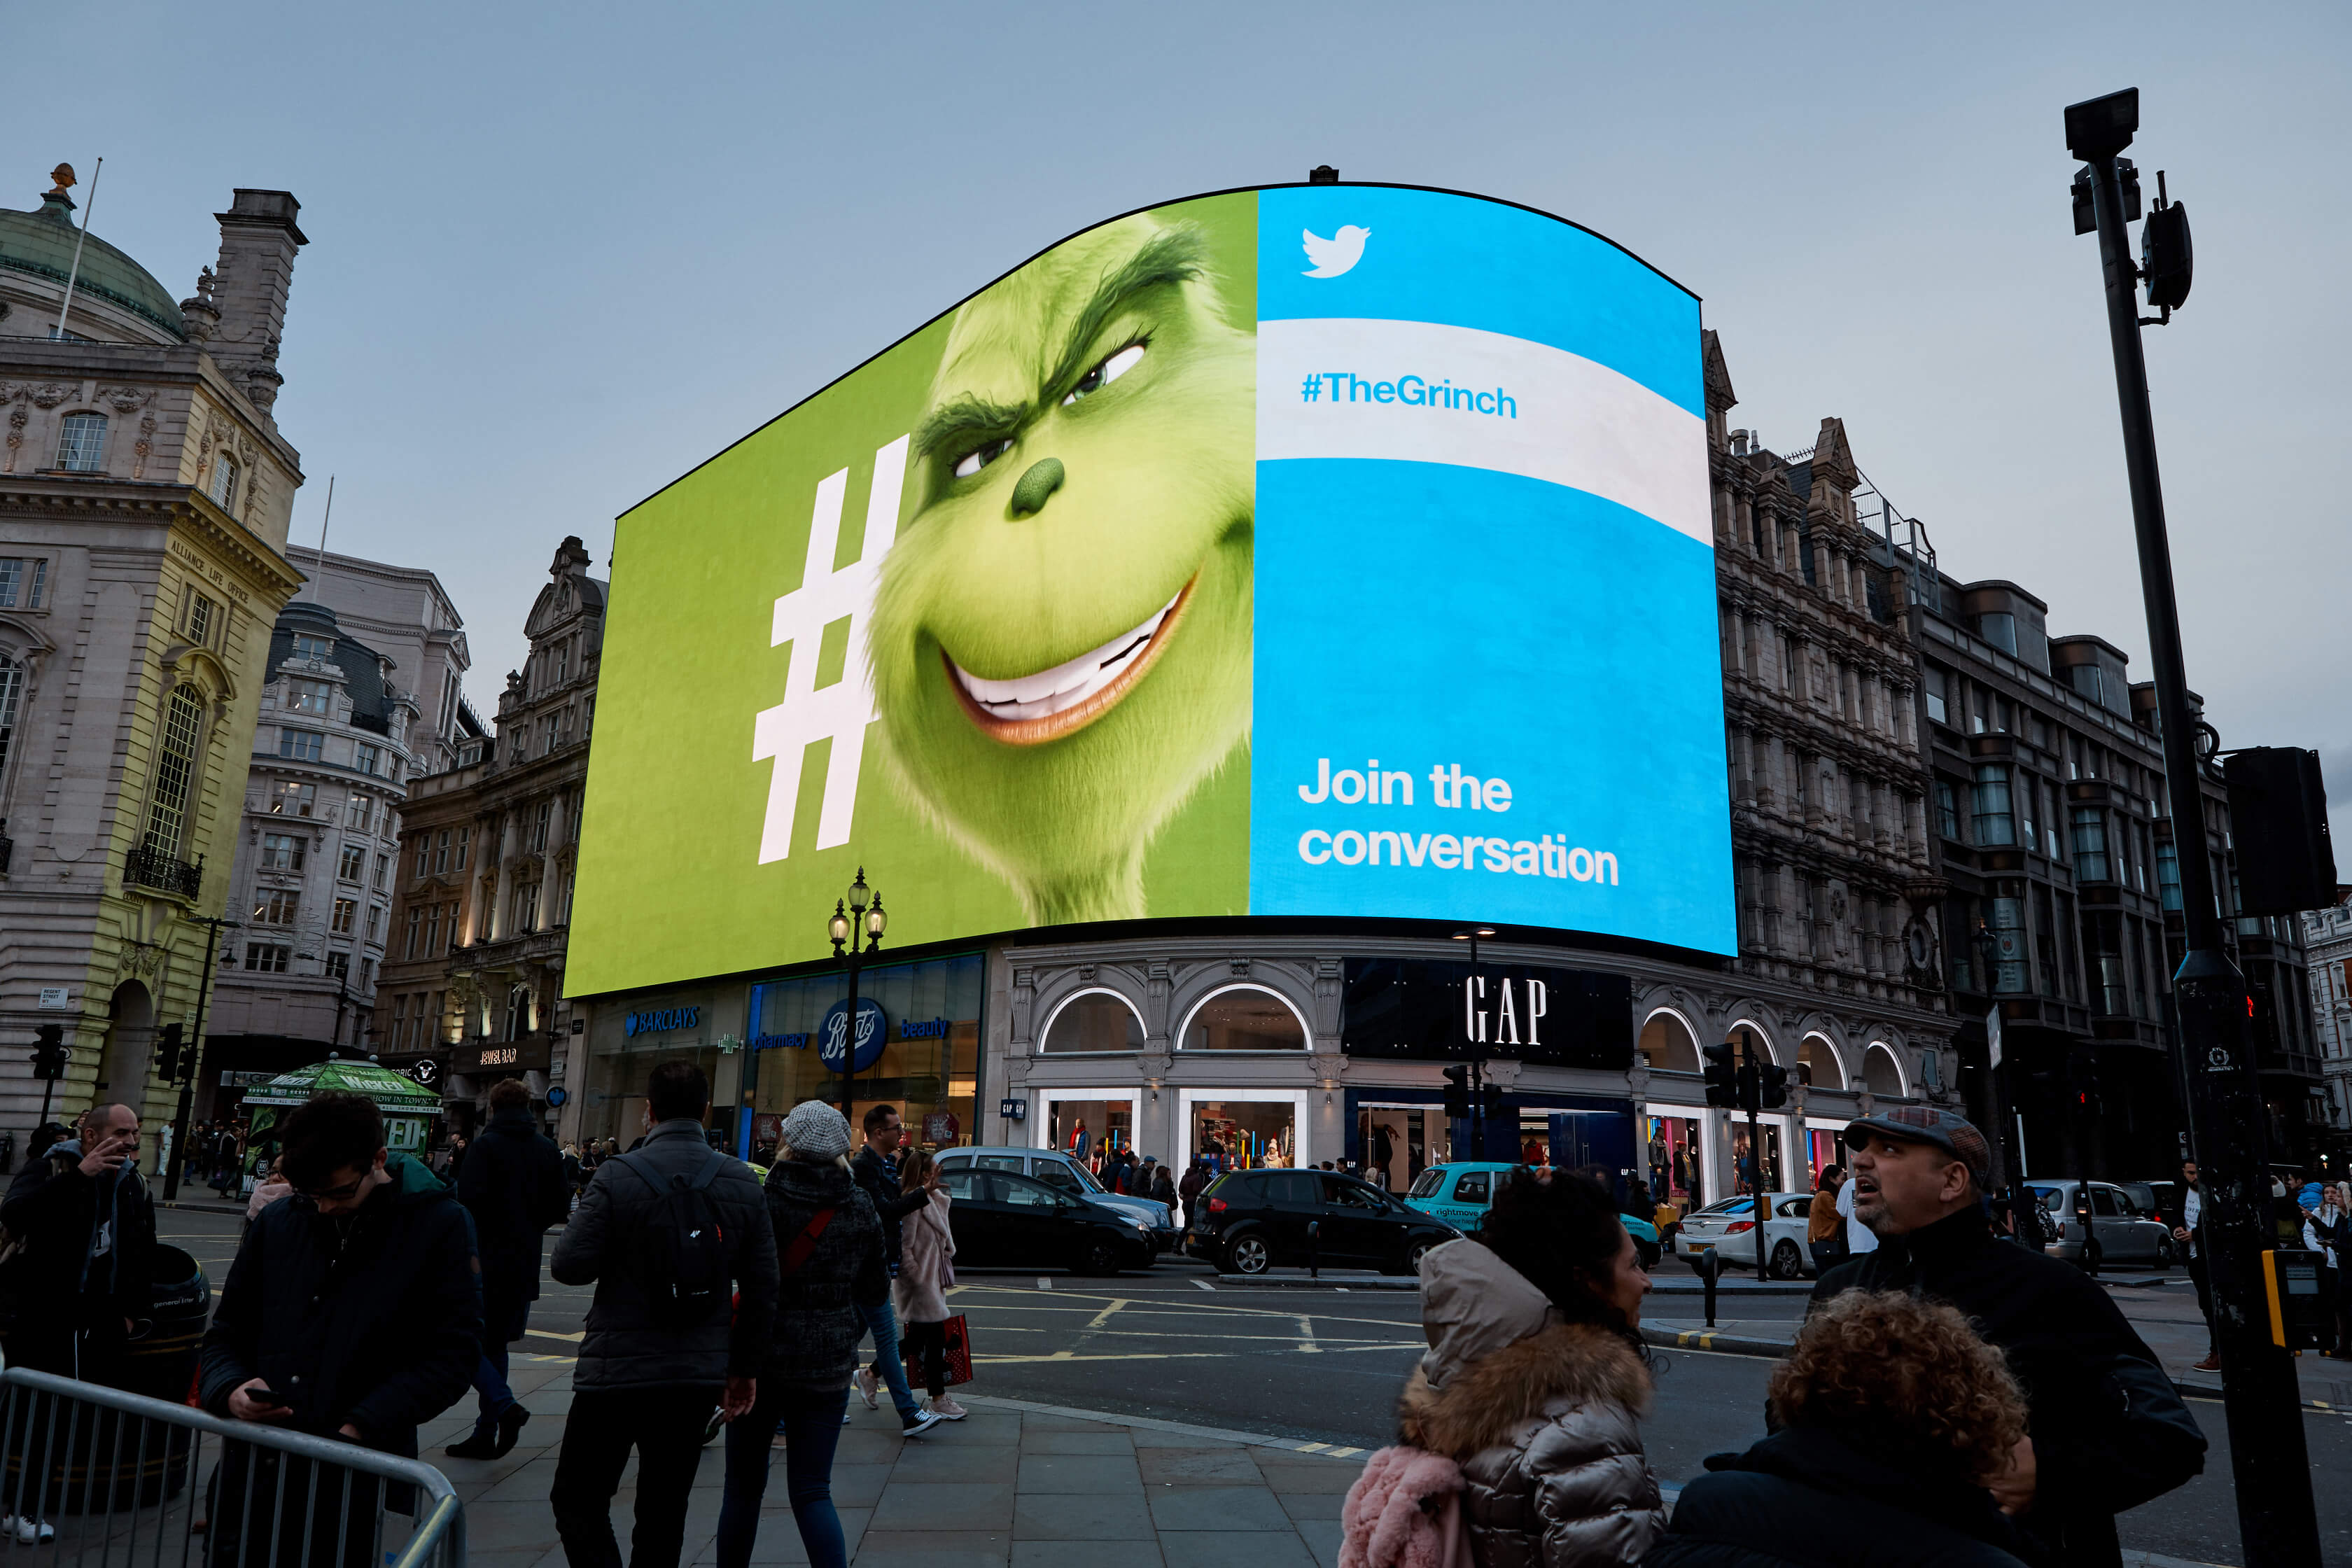 03_20181029_Twitter_Piccadilly_Lights_1676